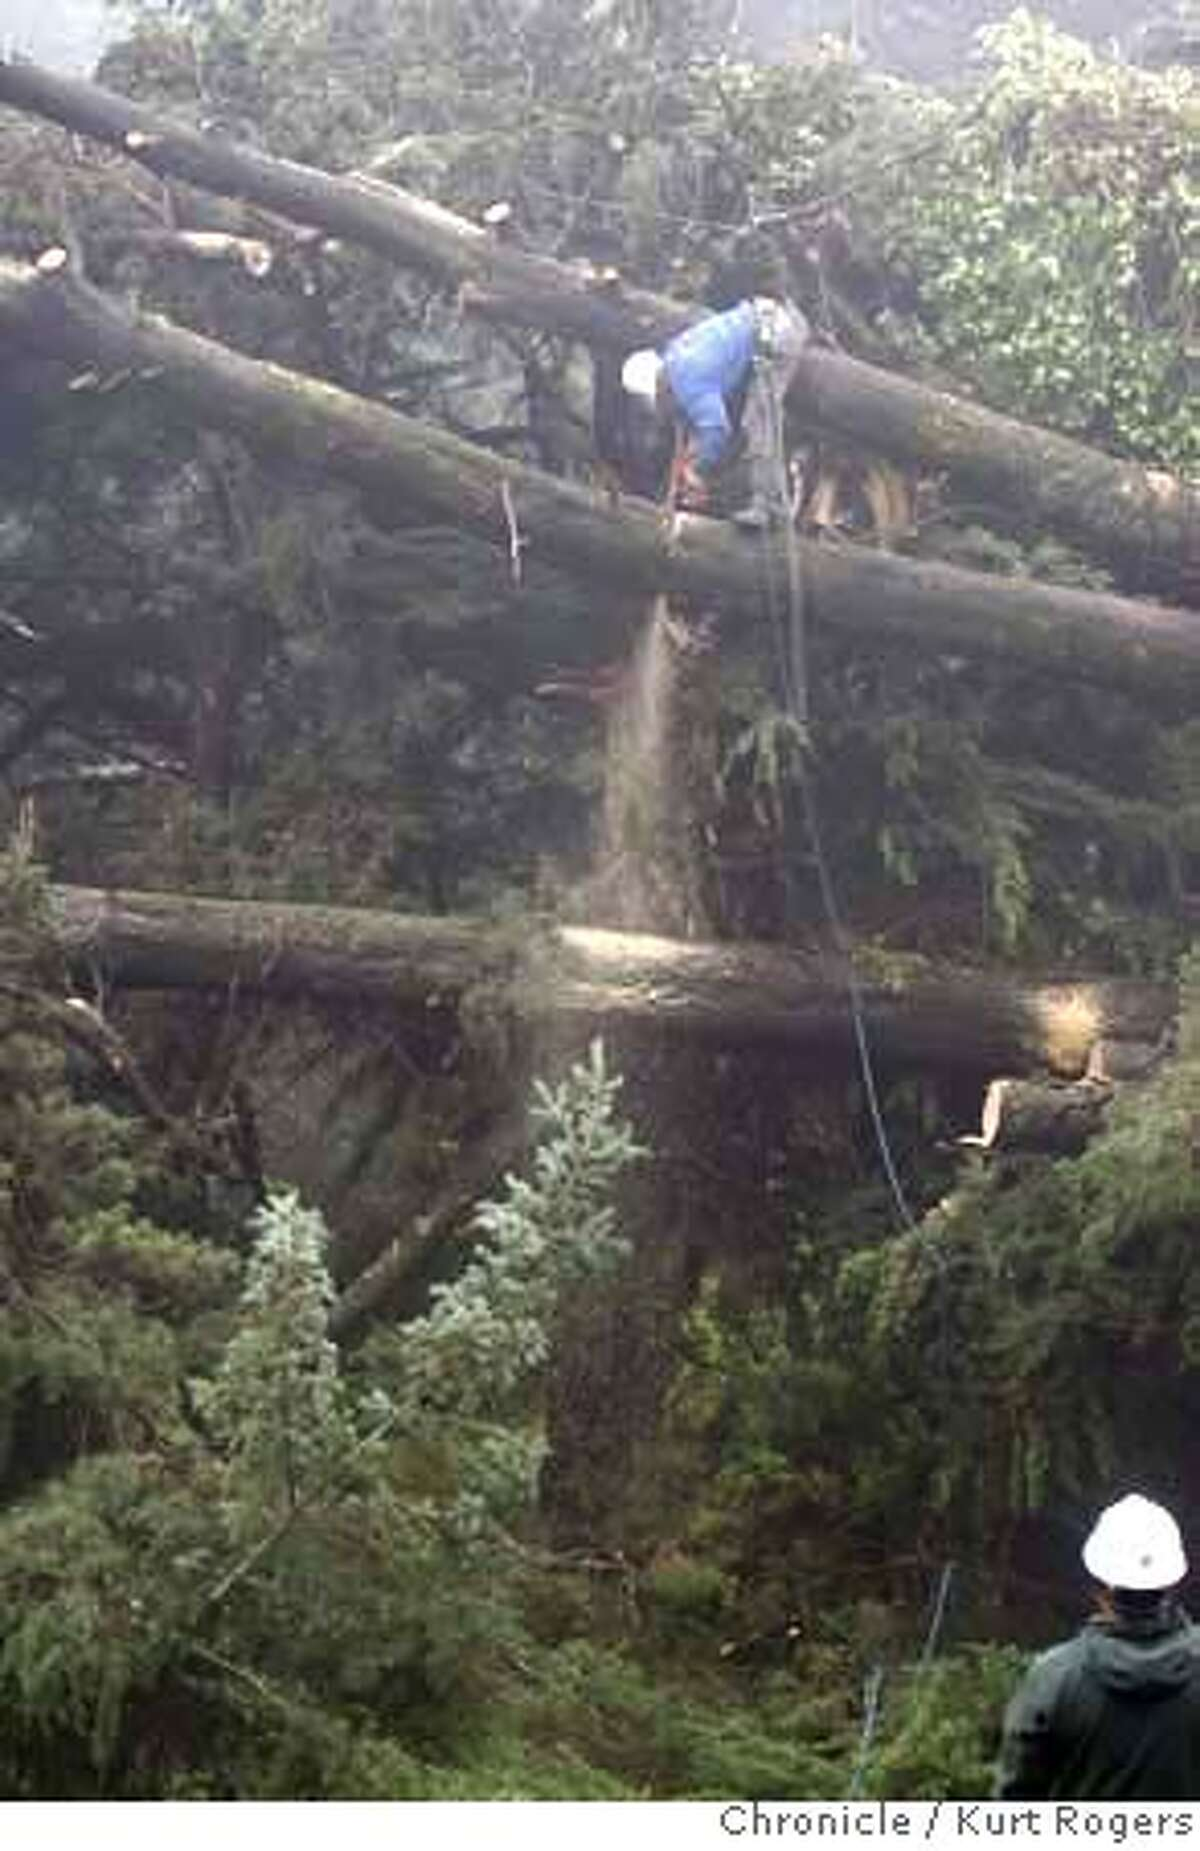 Octavio Cardoza 22 (cq) of Davy Tree cuts on a fallen cypress tree. PG&E crews called in the work crew to help clear downed trees from power lines. LINEMEN10_0029_KR.jpg Kurt Rogers / The Chronicle Photo taken on 1/9/08, in Mill Valley, CA, USA MANDATORY CREDIT FOR PHOTOG AND SAN FRANCISCO CHRONICLE/NO SALES-MAGS OUT